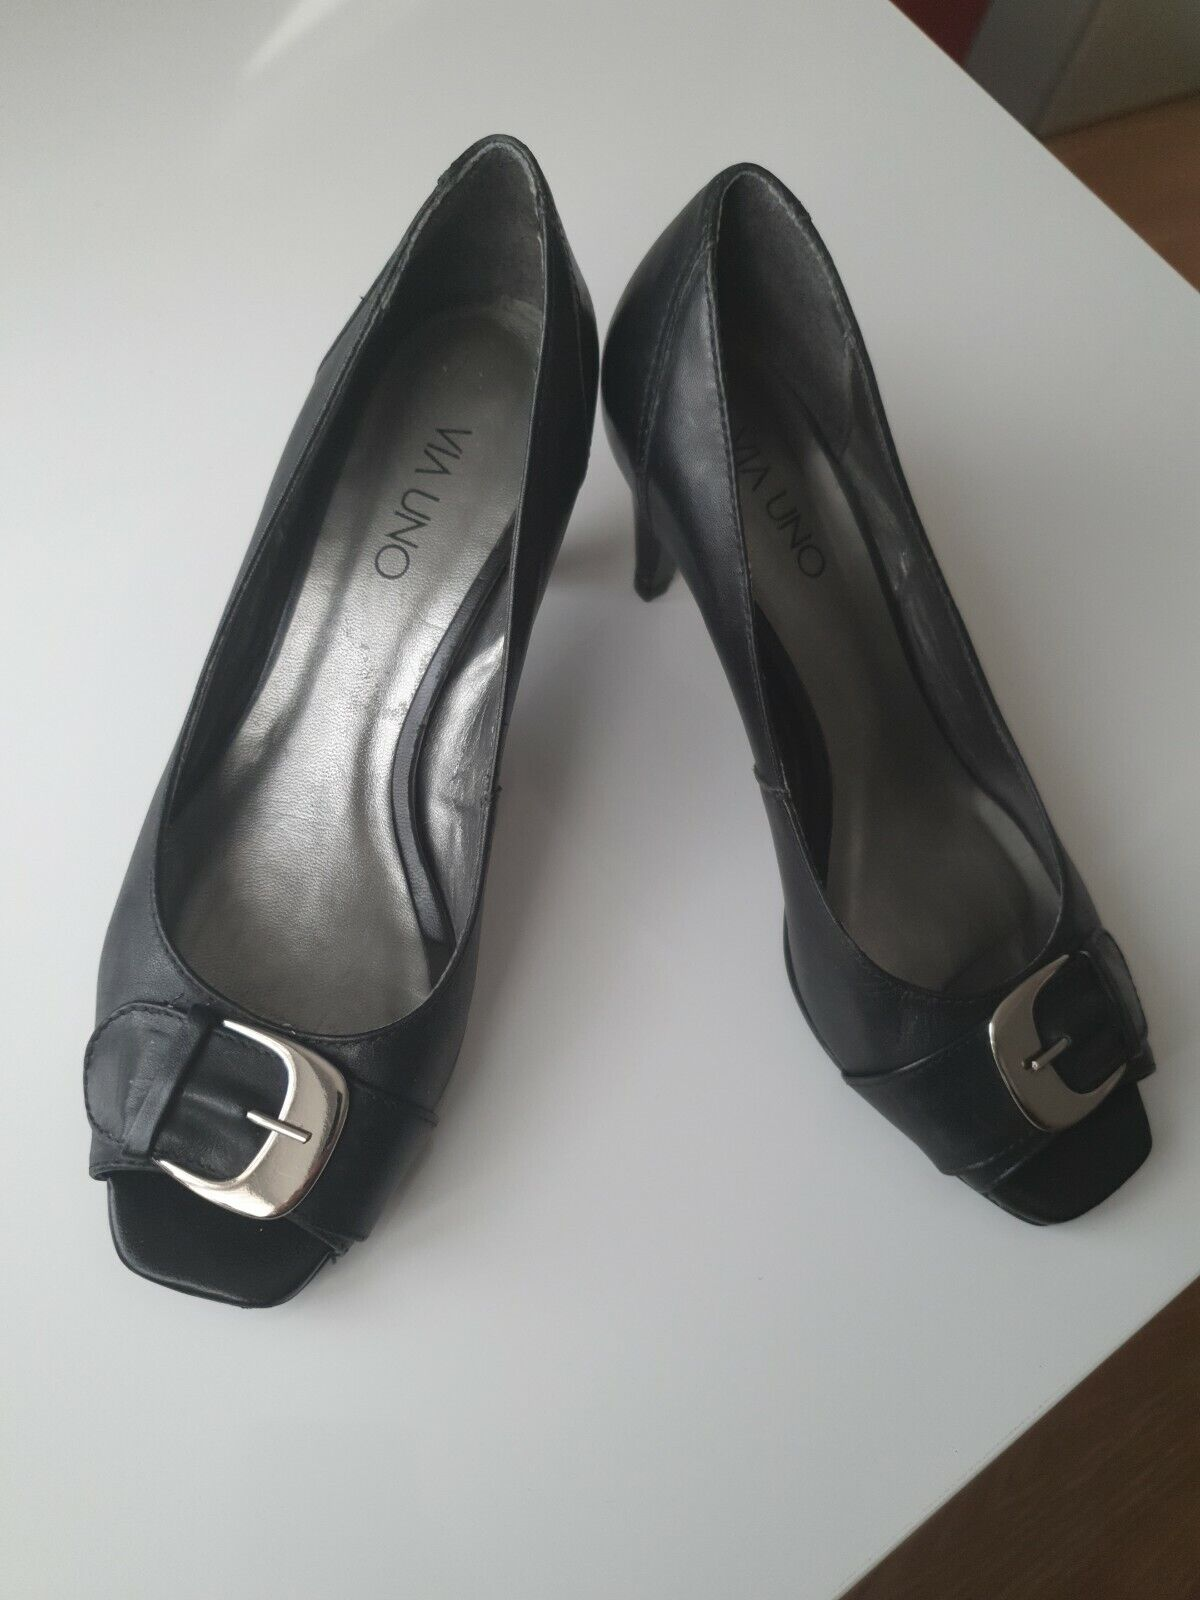 Black Open Toe Leather Shoes Heels with buckle detail Uk size 4 Eu37